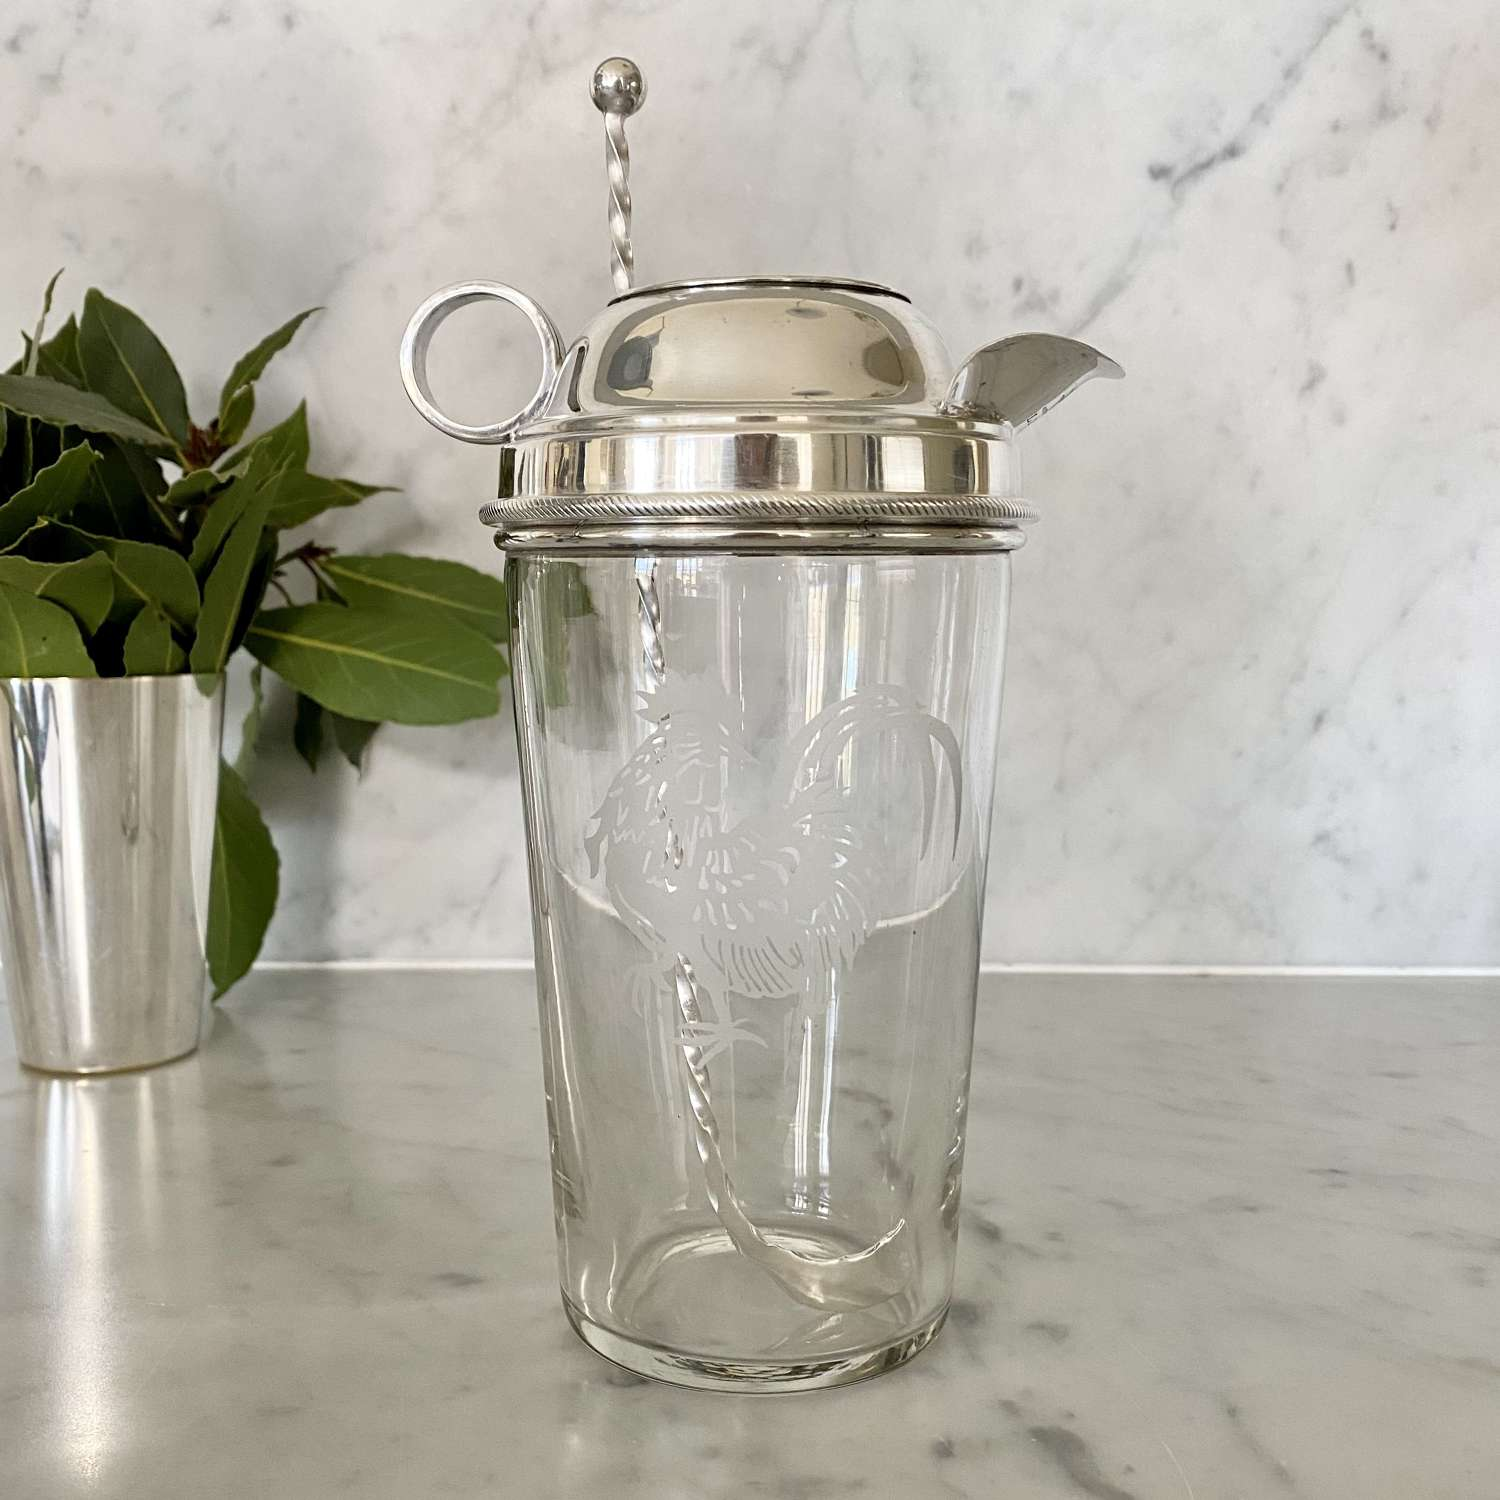 Cockerel etched glass & silver plated cocktail mixing jug 1930s